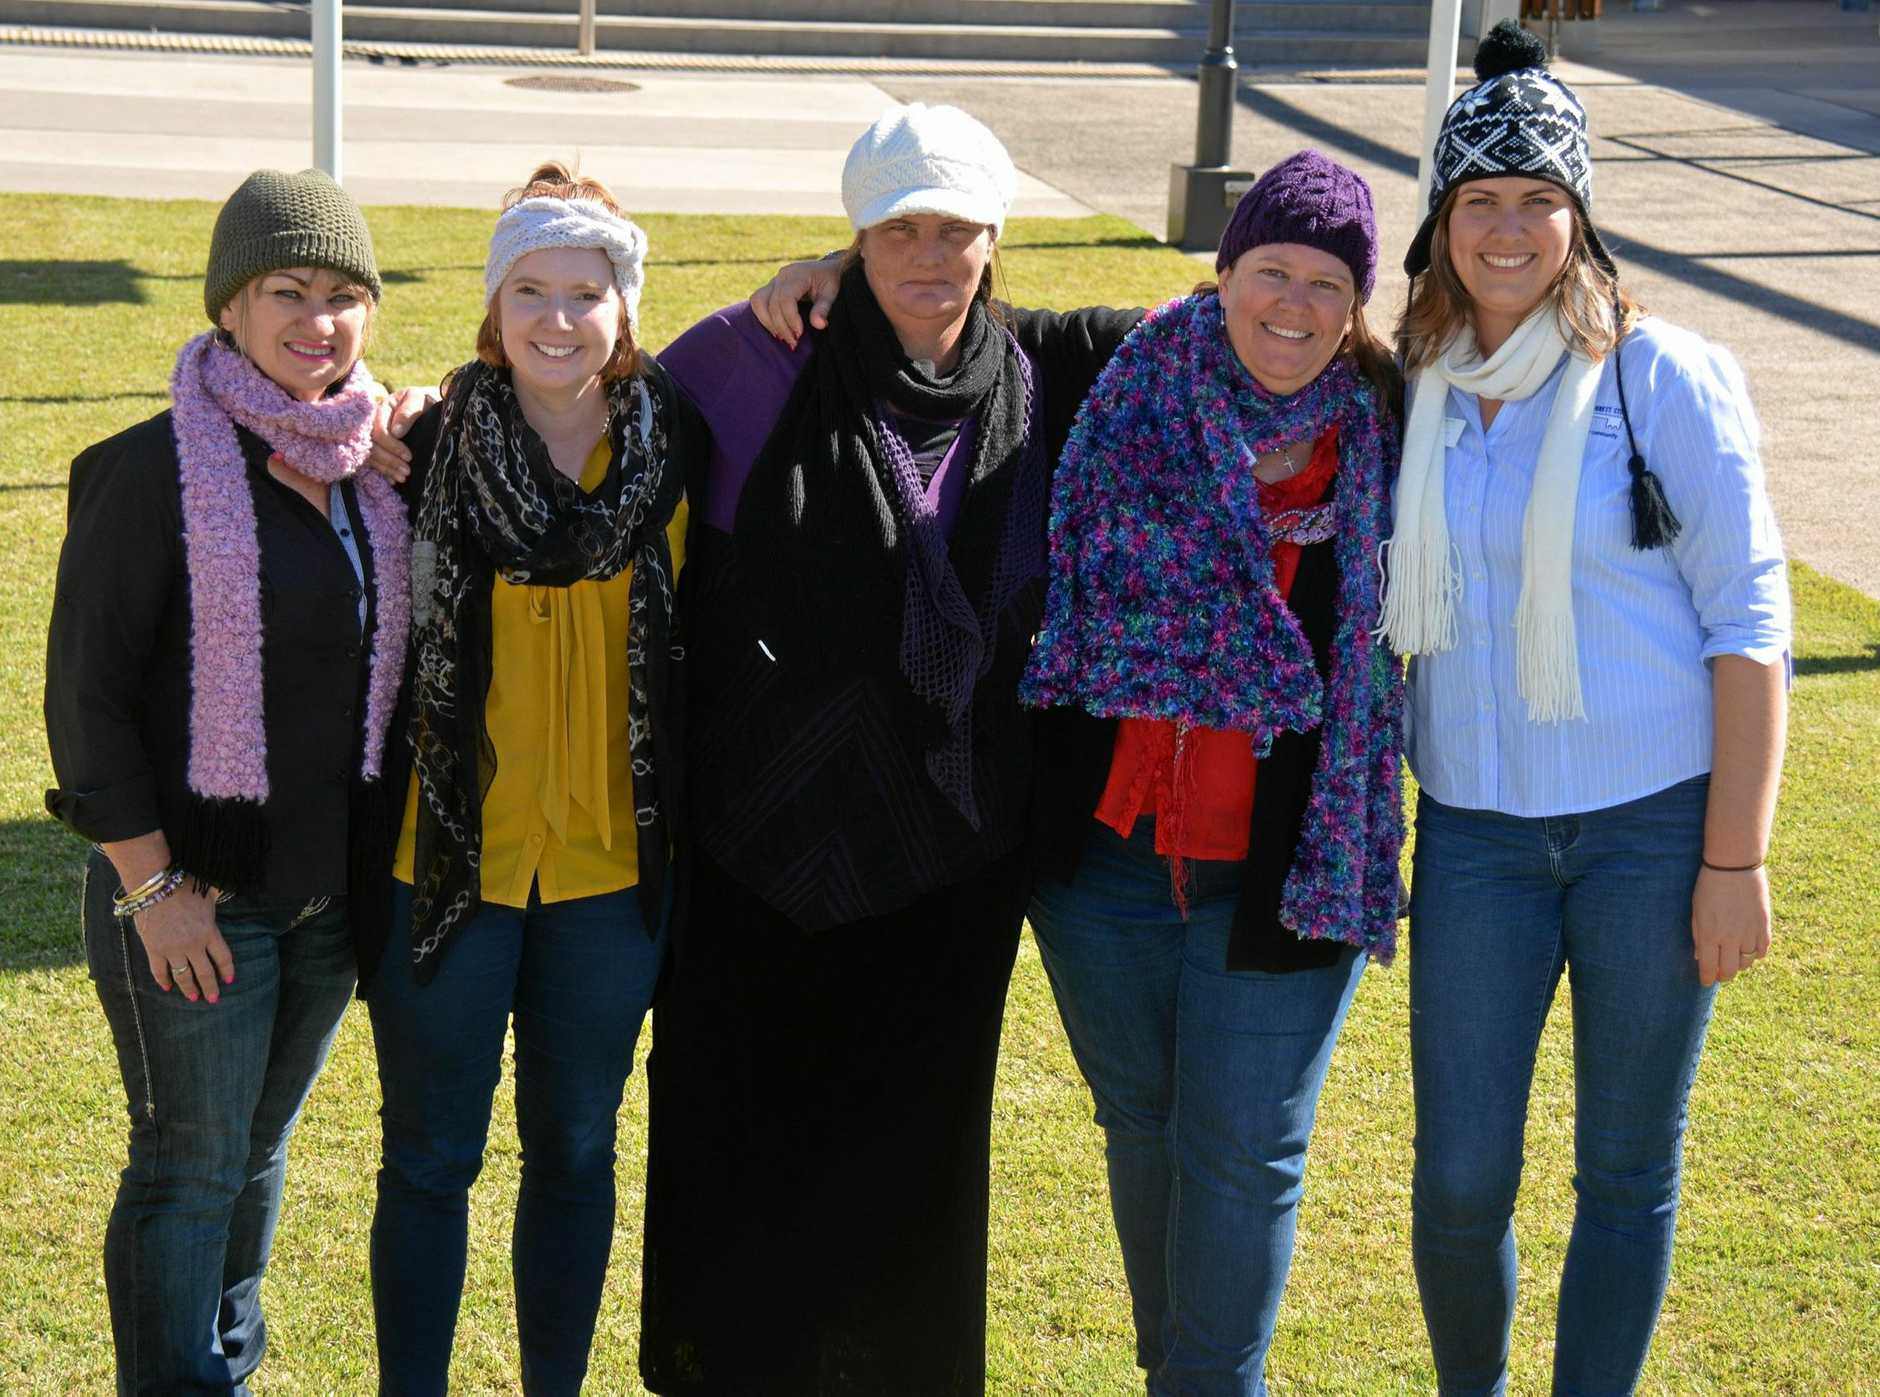 KNITTED GOODS: South Burnett Suicide Prevention Working Group members Andrea McGee, Kirsty Cauley, Kay Swanson, Cr Danita Potter and Rebekah Noe get their knitted goods ready for the Winter Warmers concert on June 22.